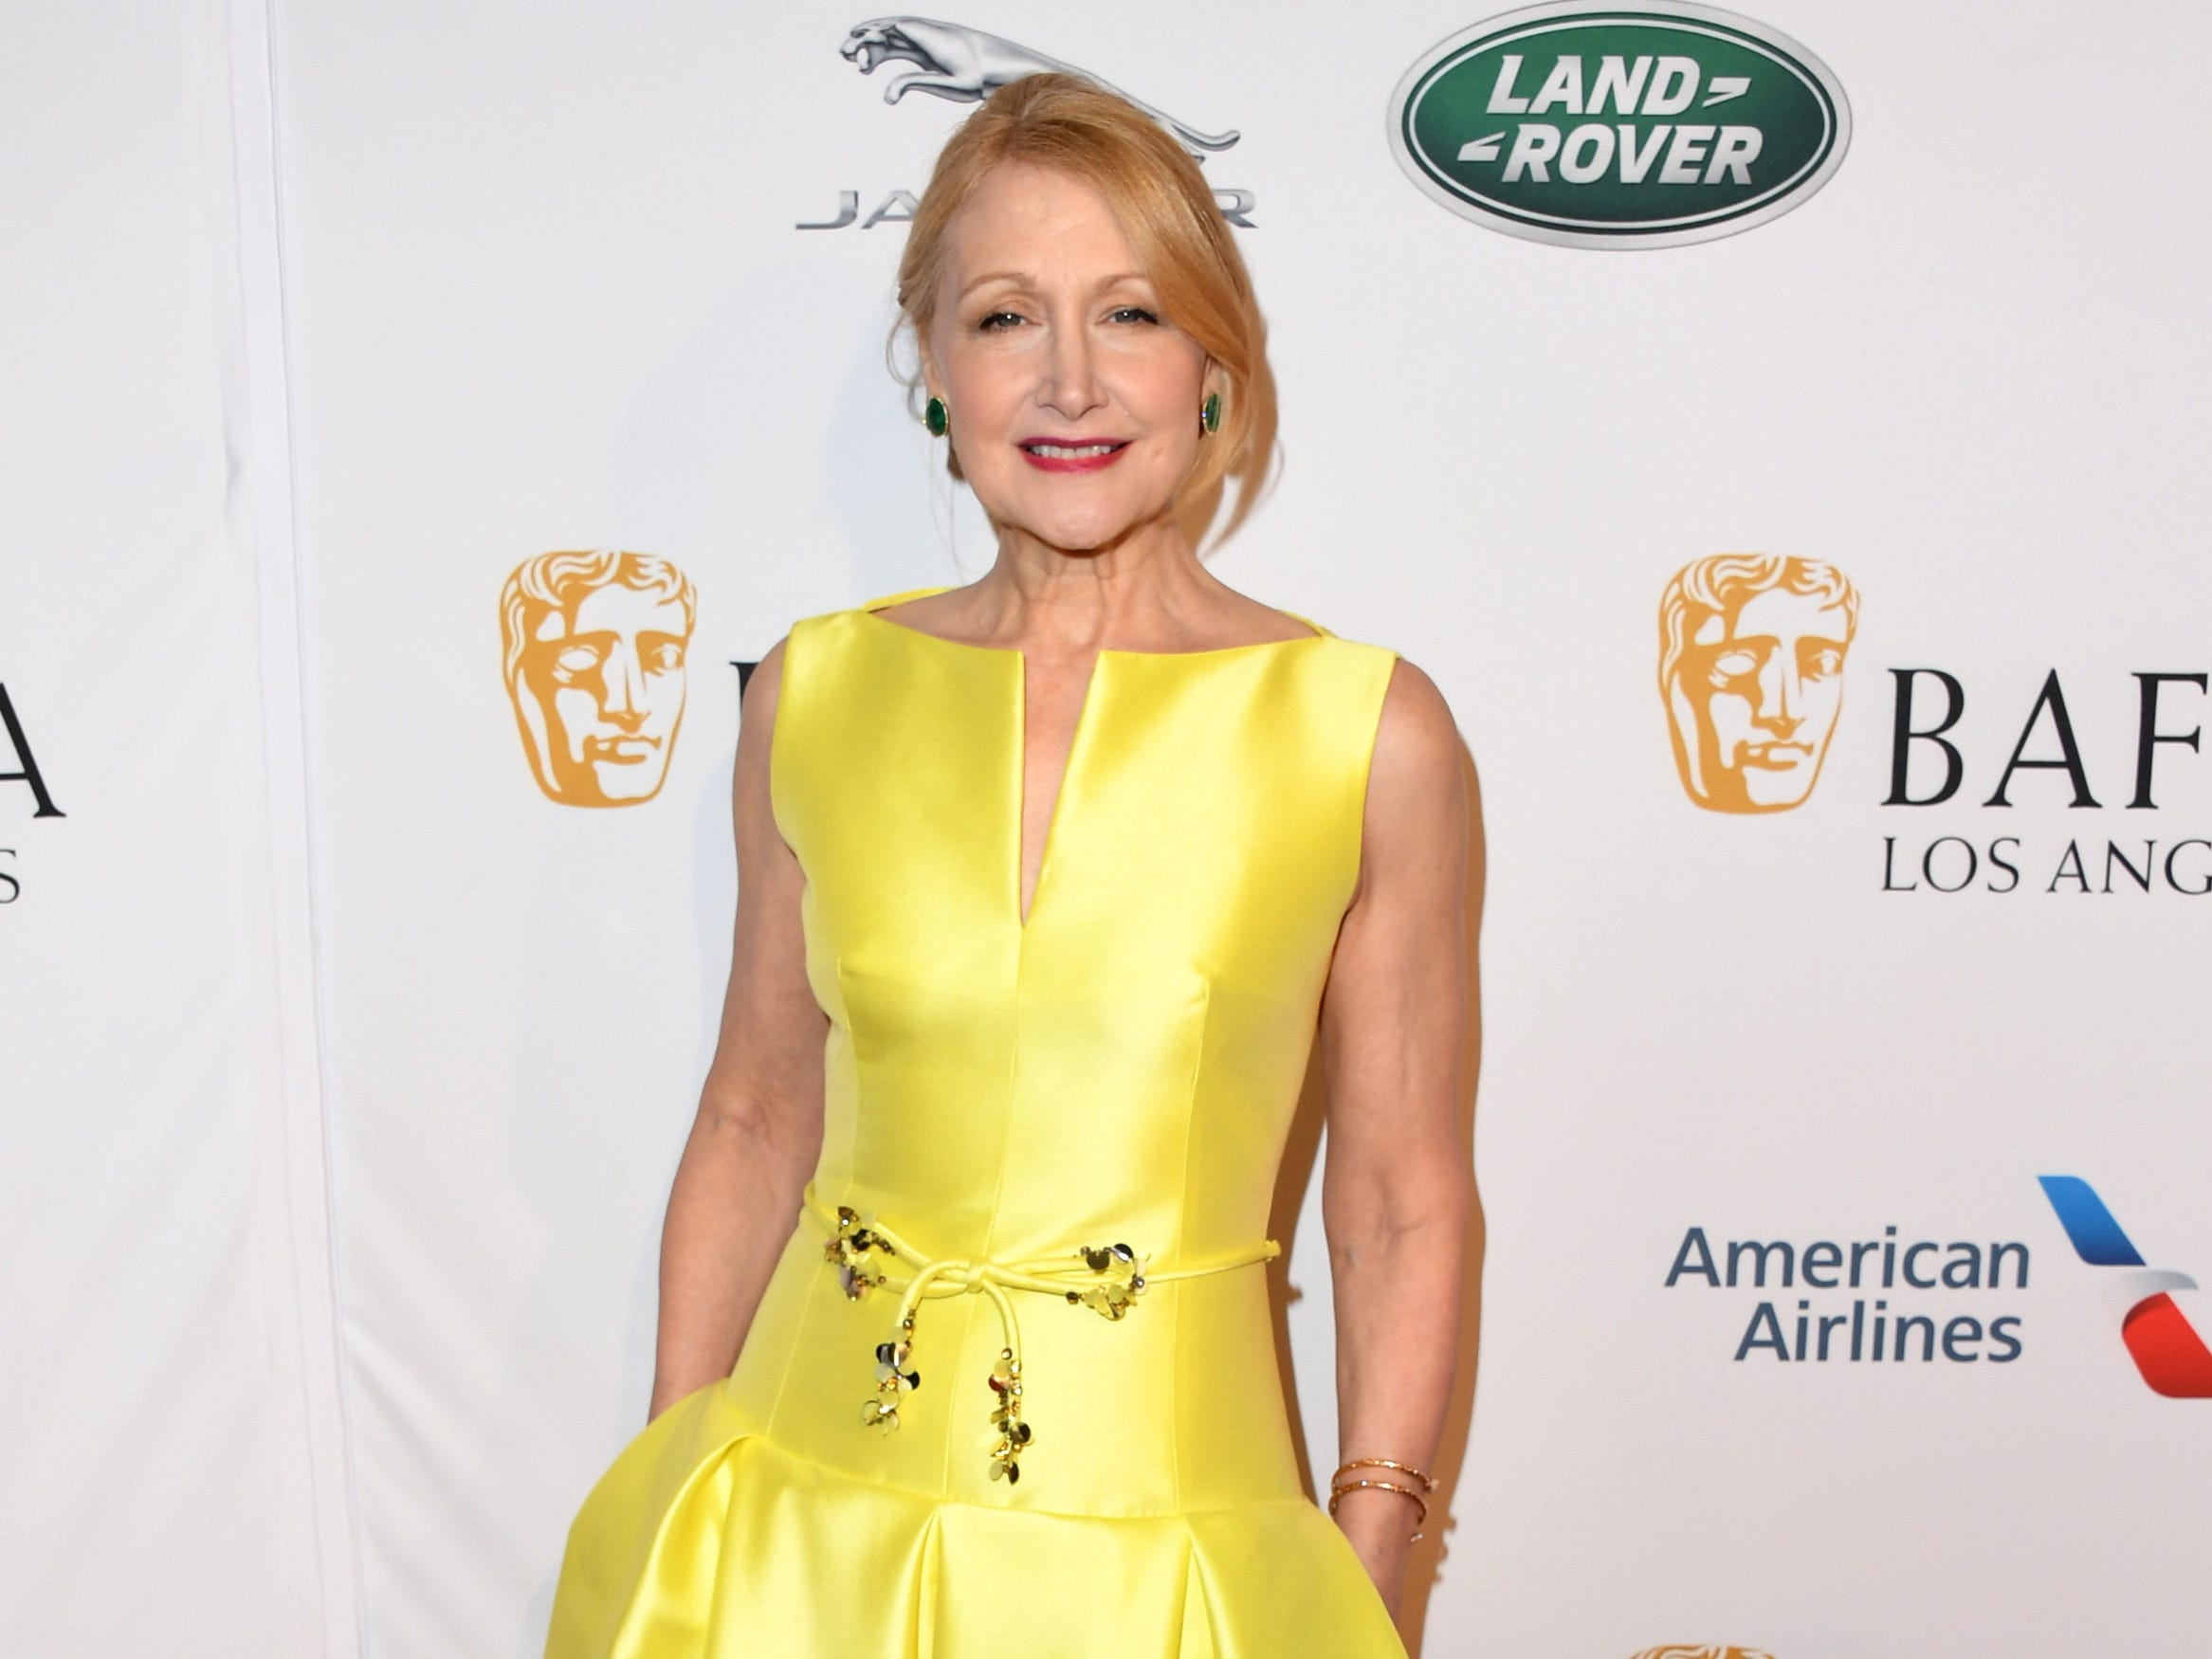 LOS ANGELES, CA - JANUARY 05:  Patricia Clarkson attends The BAFTA Los Angeles Tea Party at Four Seasons Hotel Los Angeles at Beverly Hills on January 5, 2019 in Los Angeles, California.  (Photo by Jon Kopaloff/Getty Images) ORG XMIT: 775261683 ORIG FILE ID: 1077928164